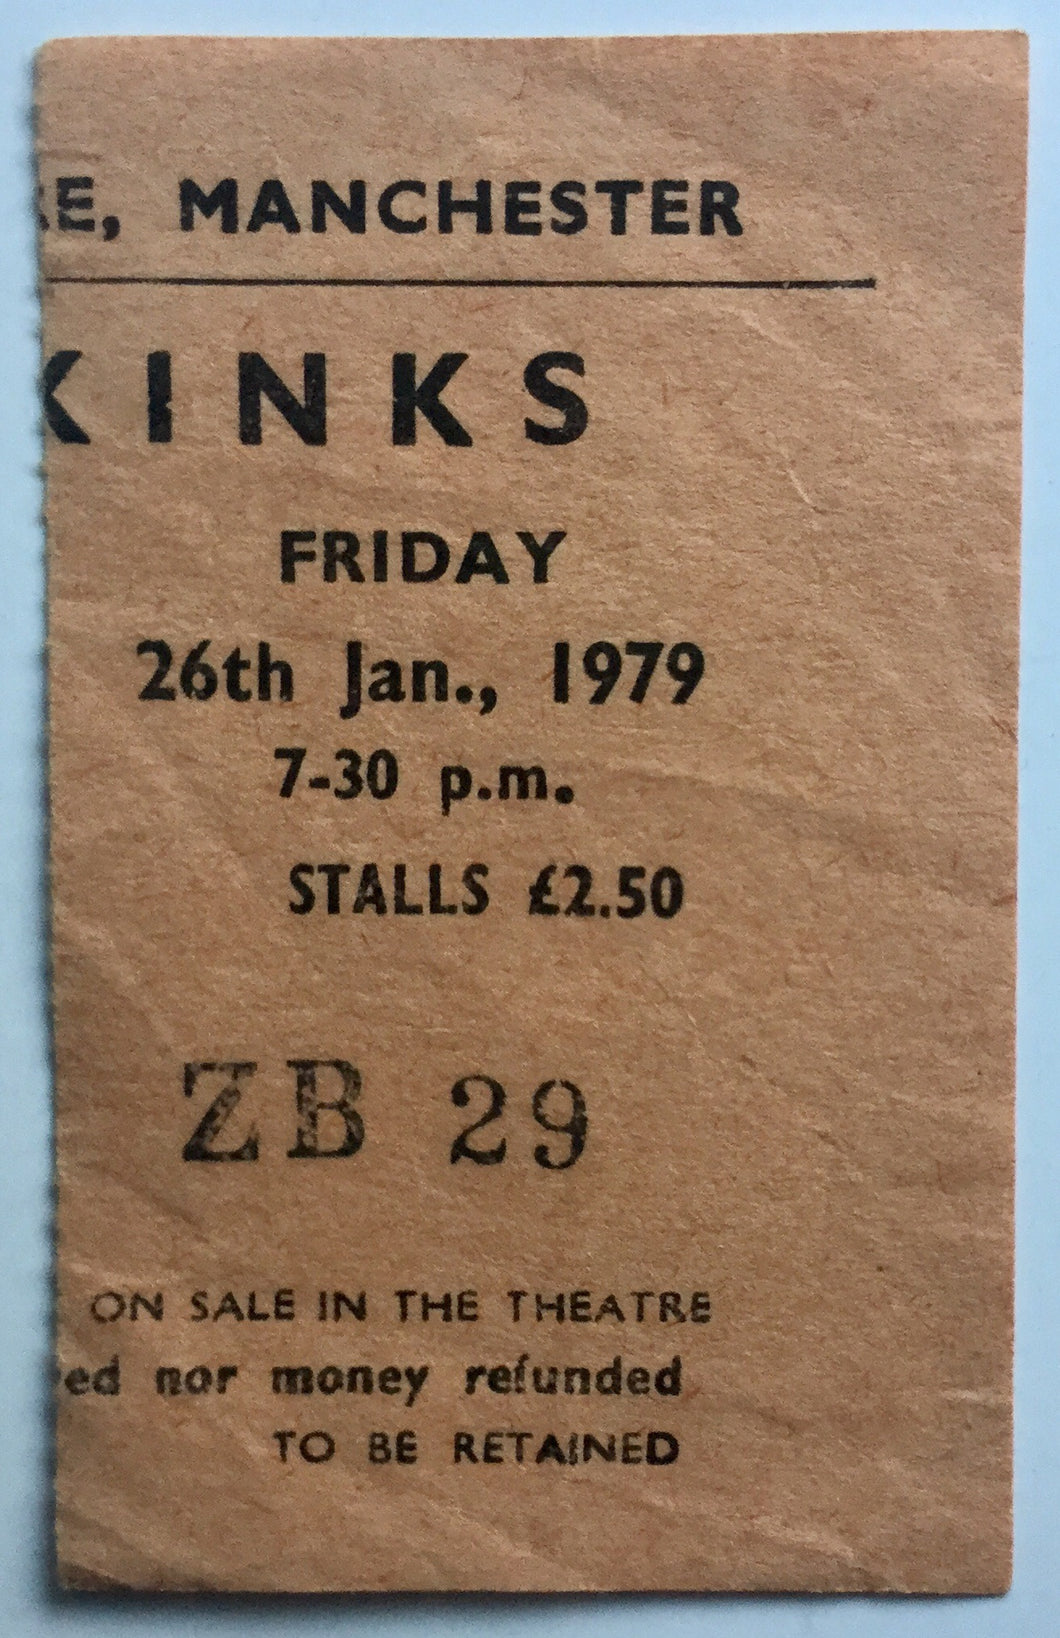 Kinks Original Used Concert Ticket Apollo Theatre Manchester 26th Jan 1979